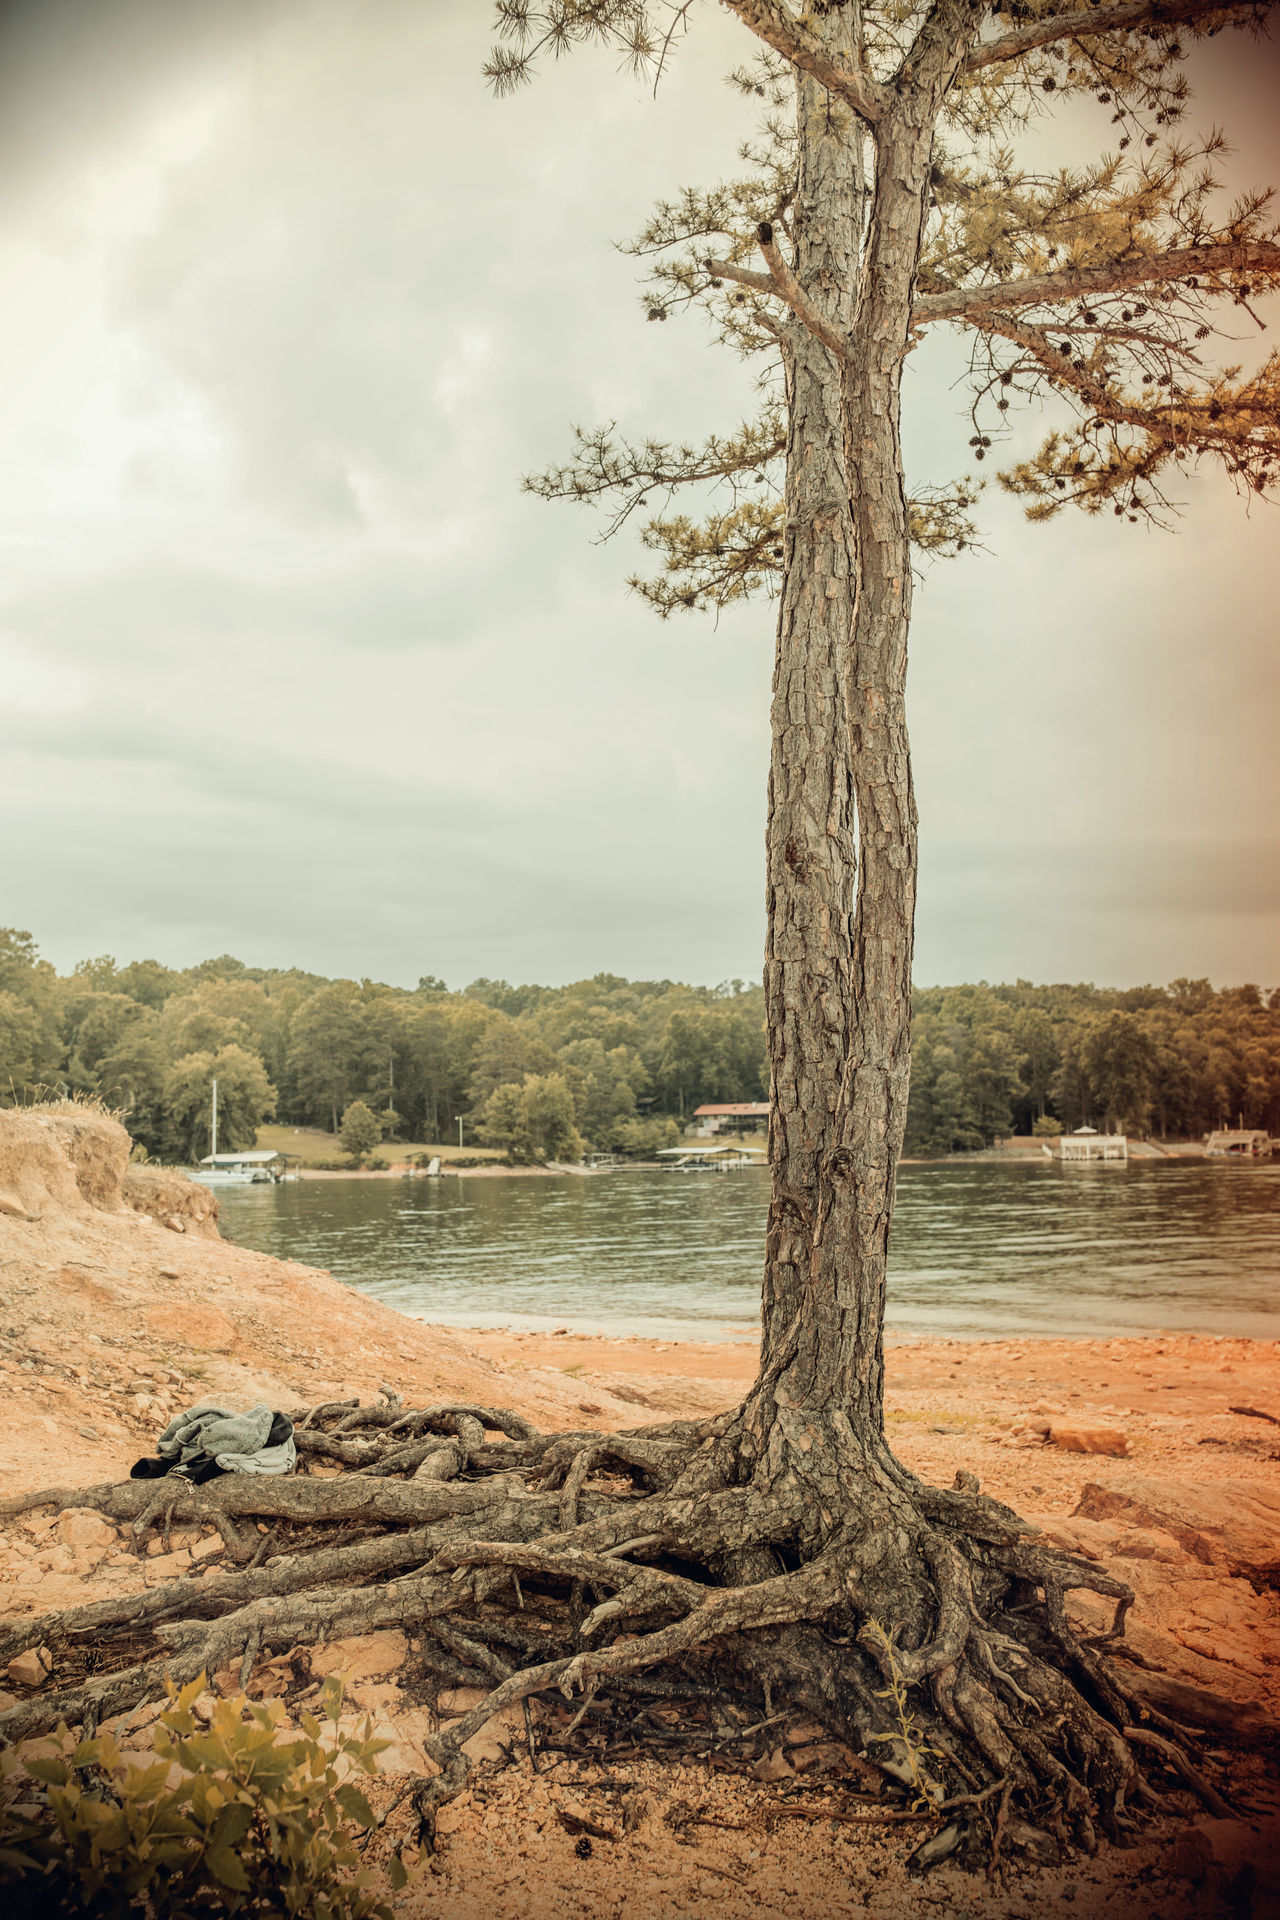 Beauty In Nature Branch Day Dead Tree Edit Landscape Nature No People Outdoors Scenics Sky Tranquility Tree Tree Trunk Vintage Vintage Photo Water